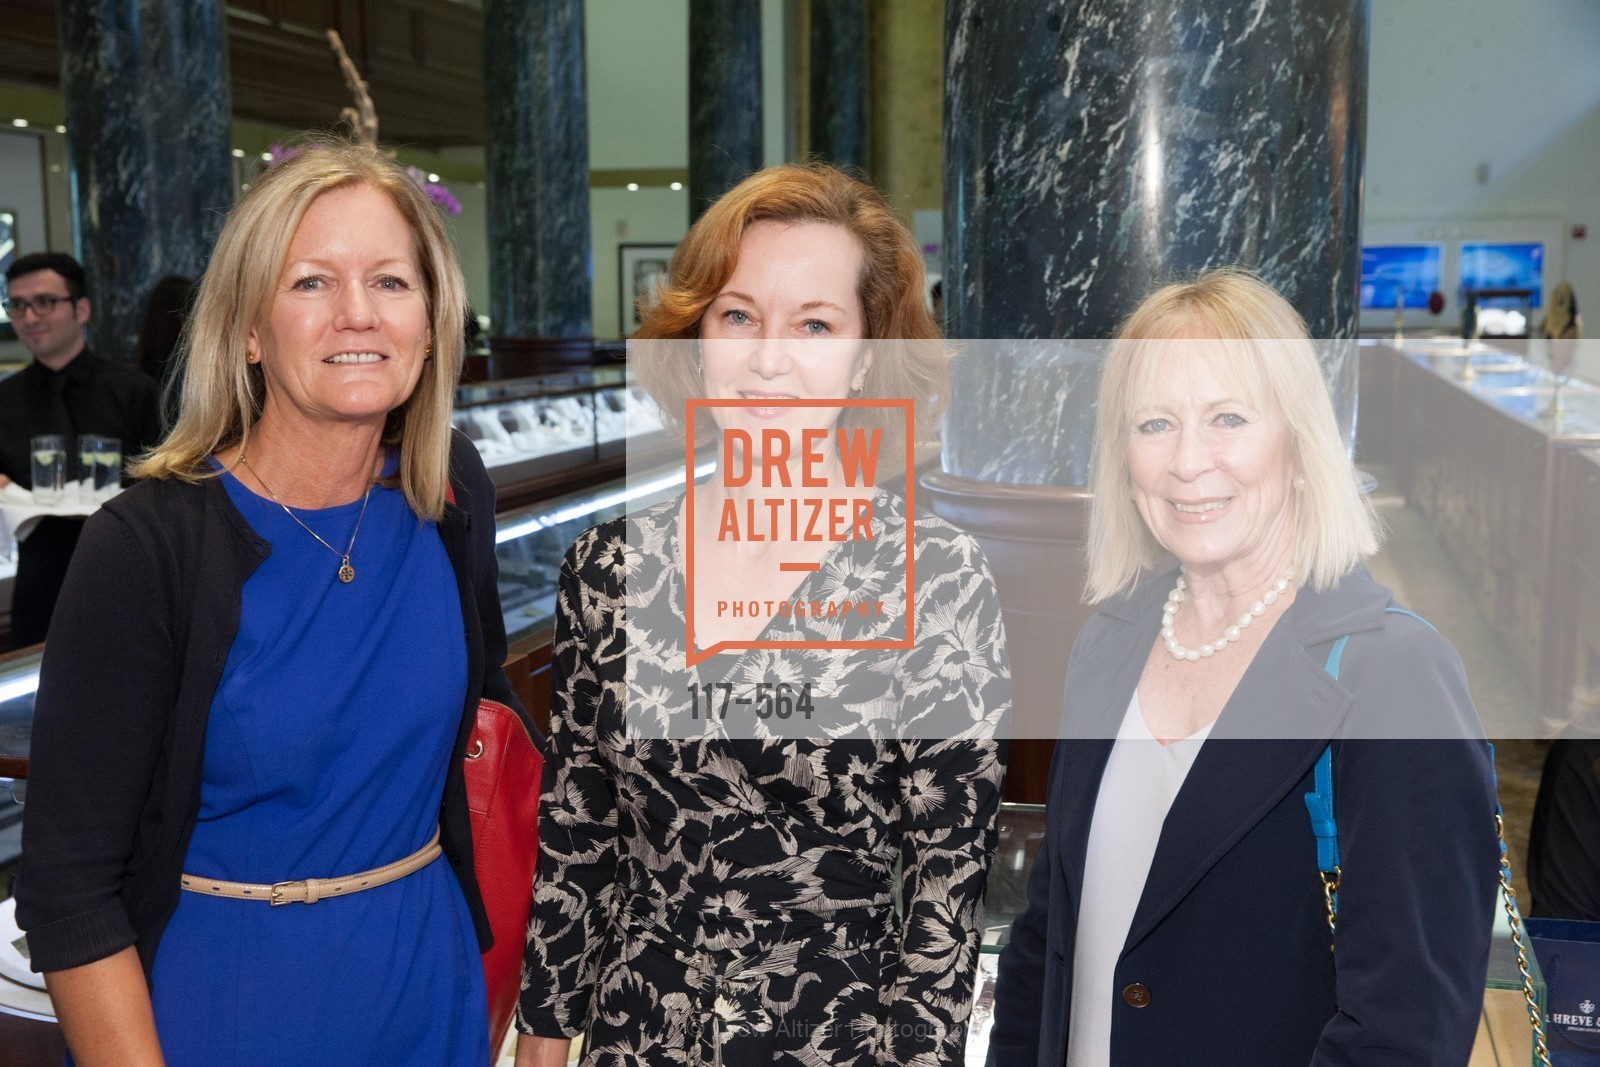 Erin McGlynn, Katie D'Alessandro, Diane Schaffer, SHREVE & CO. Hosts AMERICAN CANCER SOCIETY BENEFIT, US, September 10th, 2014,Drew Altizer, Drew Altizer Photography, full-service event agency, private events, San Francisco photographer, photographer California